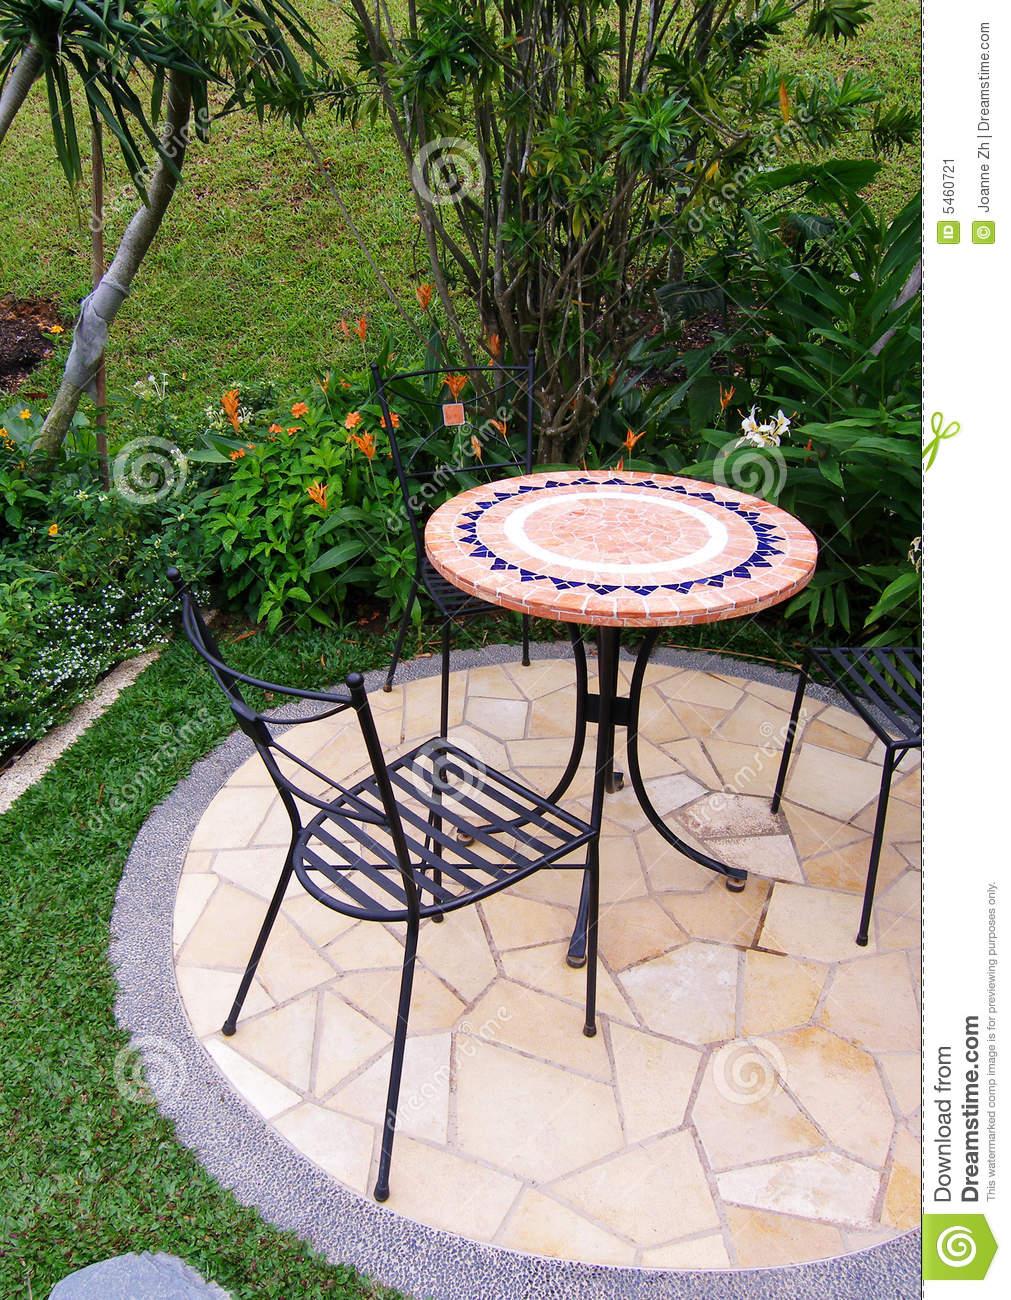 Outdoor Garden Patio Furniture Stock Image Image 5460721